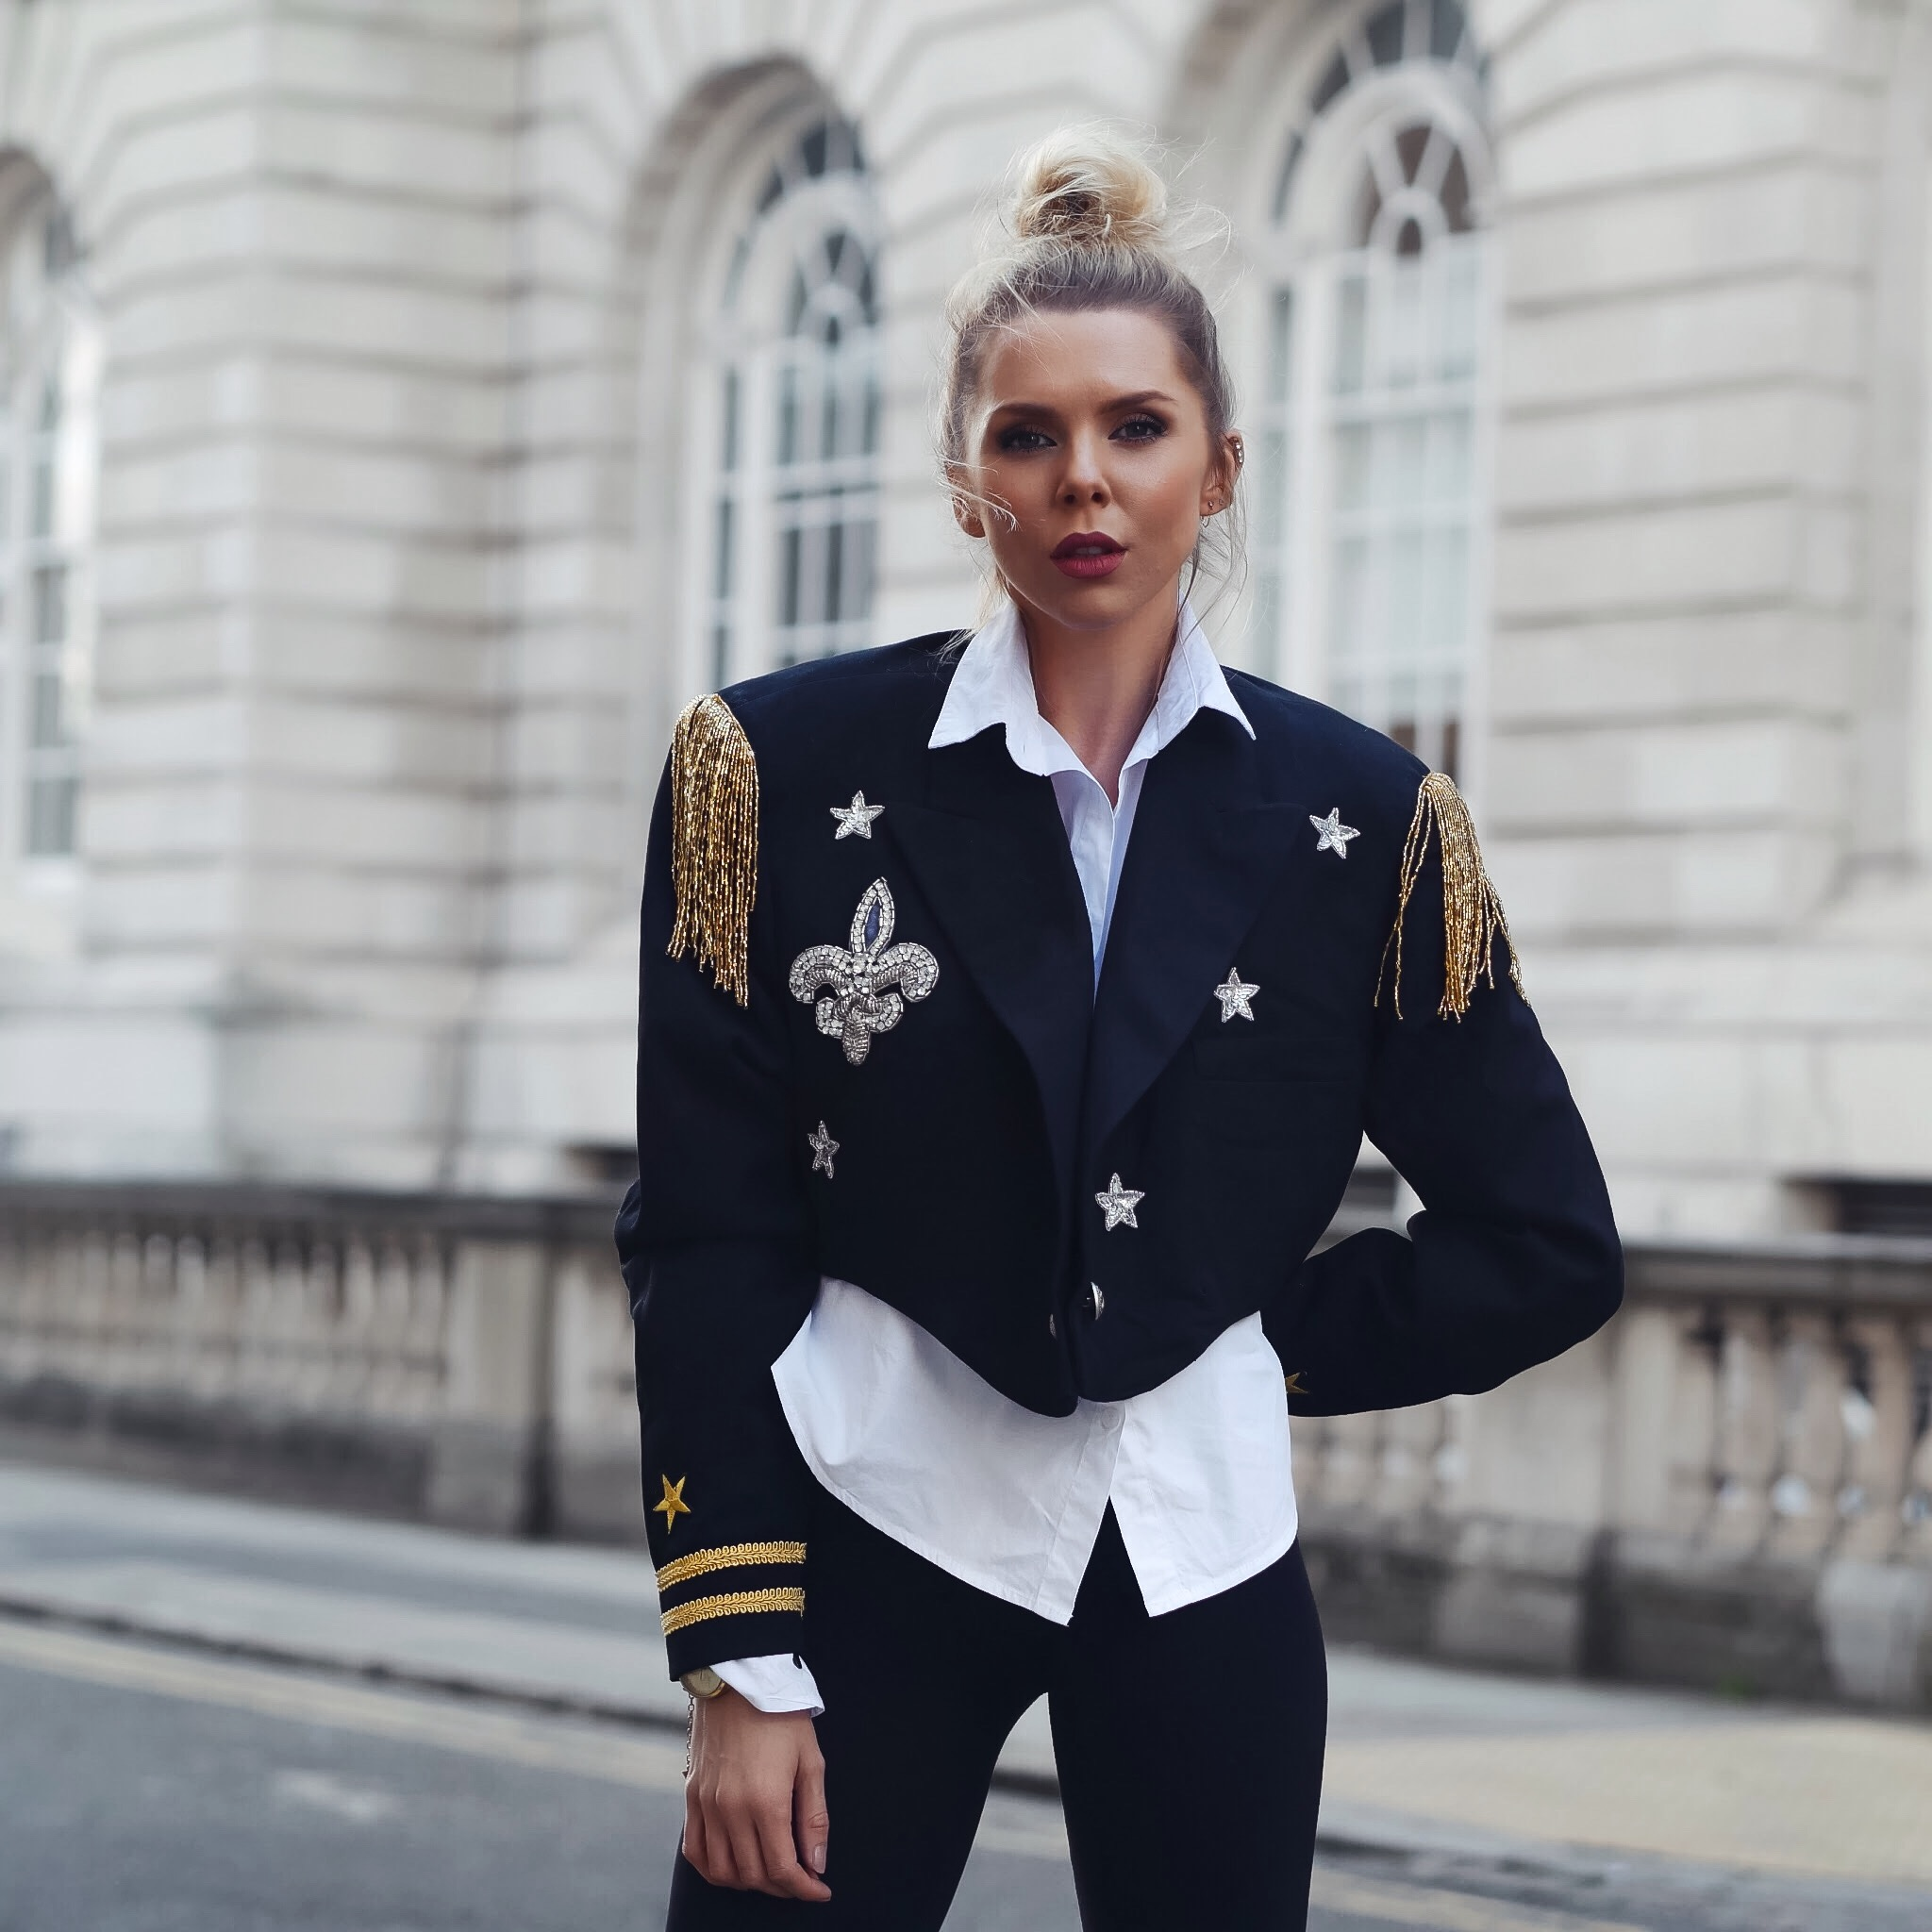 haul, affordable fashion, streetstyle, inspiration, what to wear, fashion, lookbook, style, fashion blogger, laura blair, youtuber, london fashion girl, nastygal, military